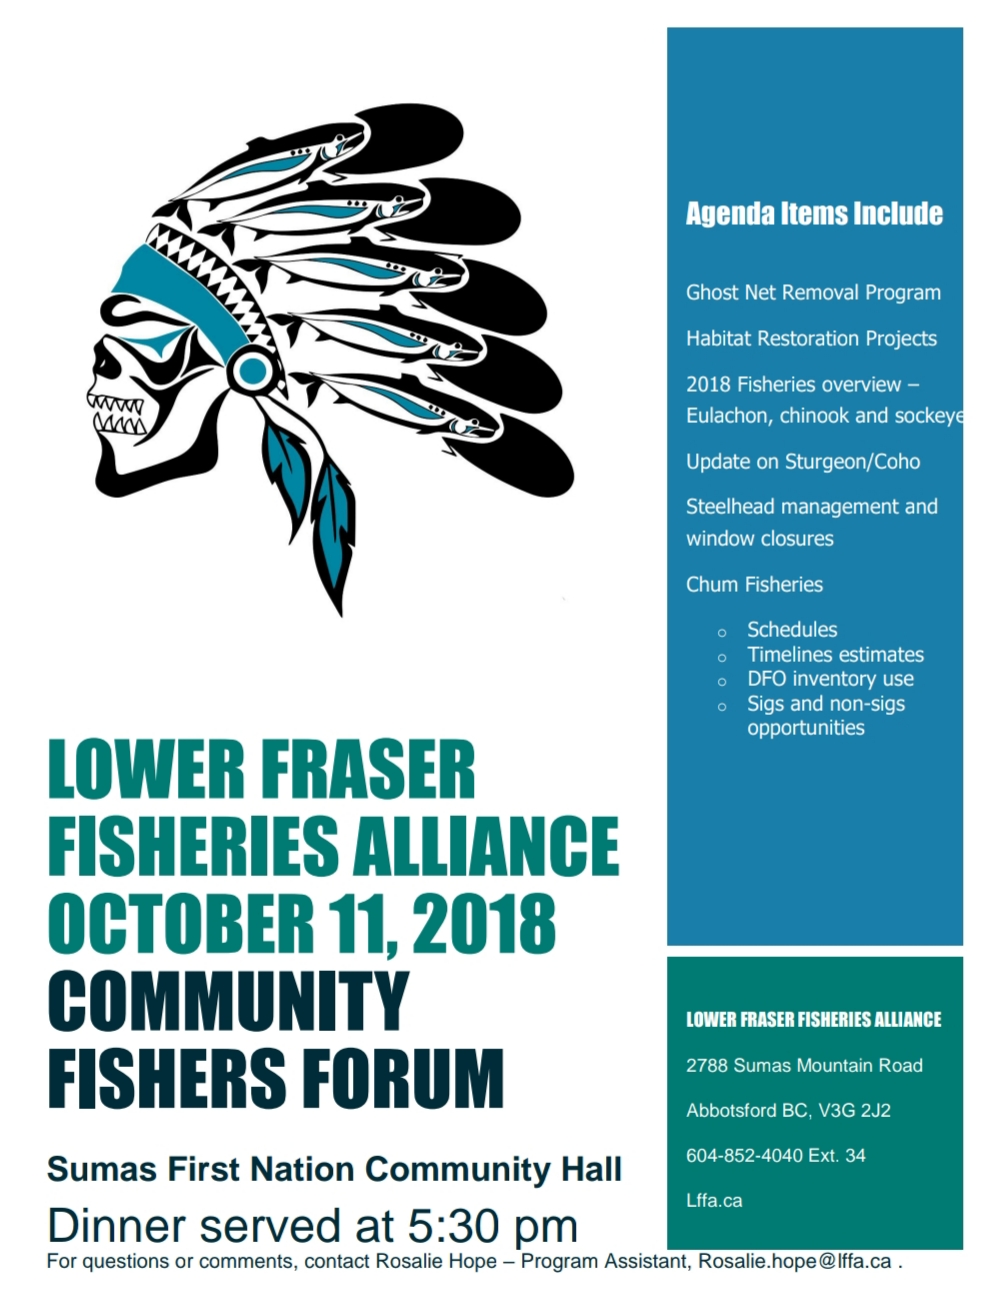 LFFA Community Fishers Forum - 2018